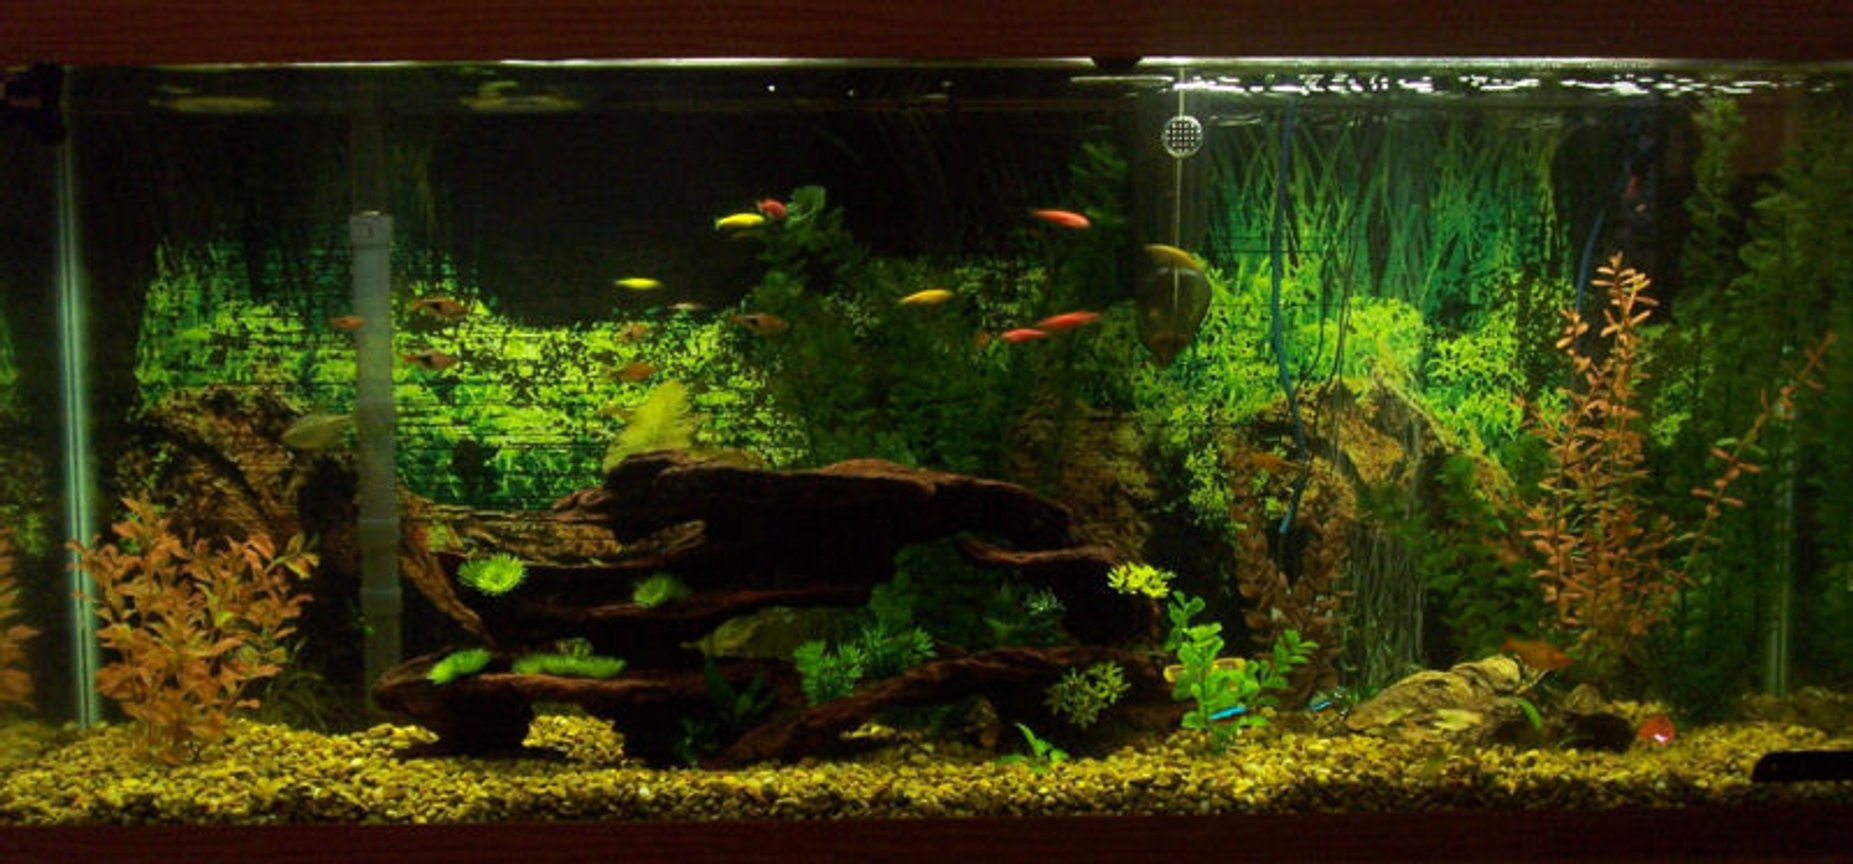 55 gallons freshwater fish tank (mostly fish and non-living decorations) - 55g Community Aquarium